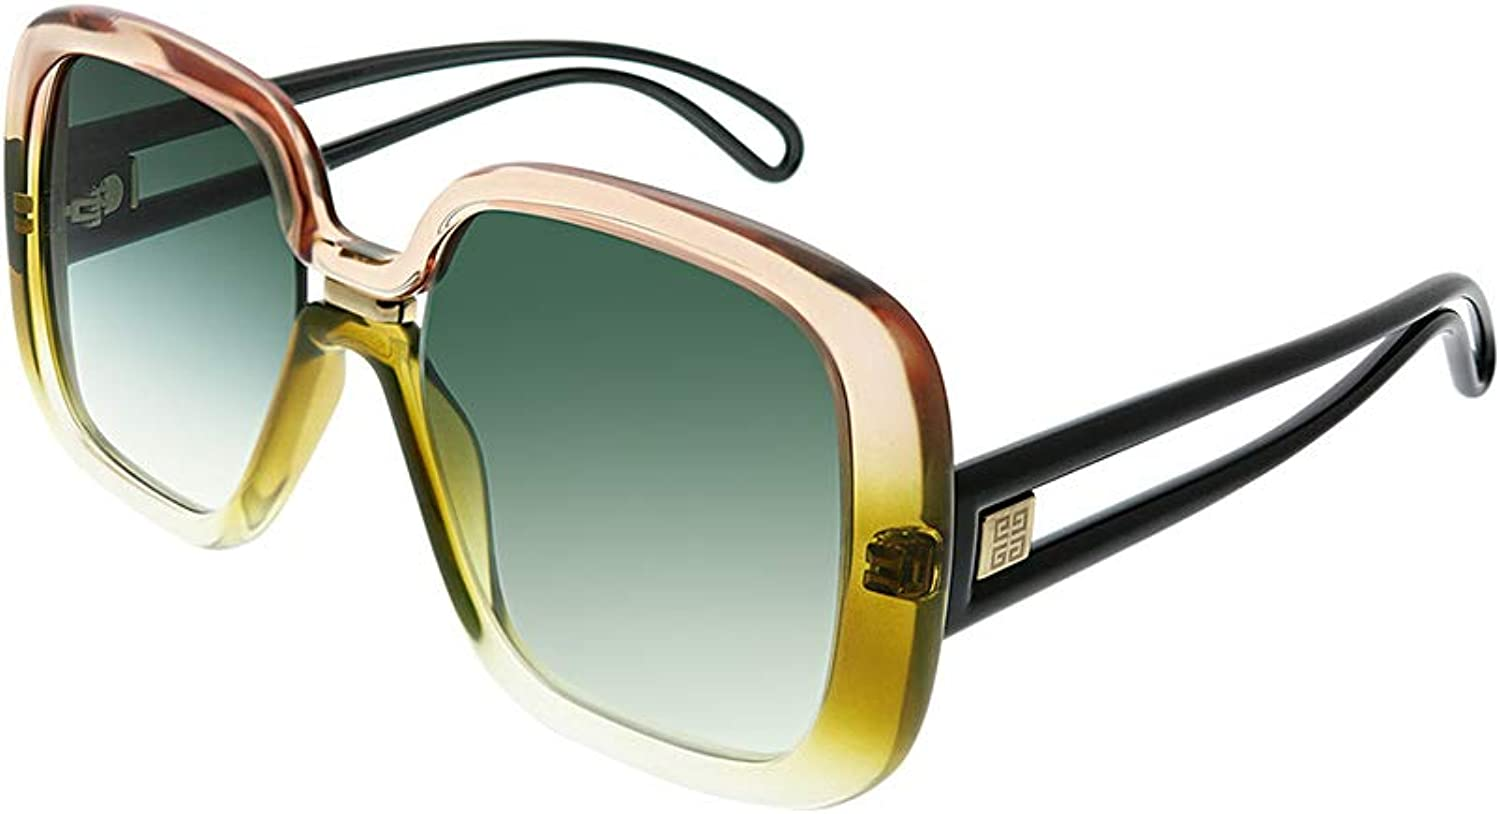 Givenchy GV 7106 039 Brown Plastic Rectangle Sunglasses Green Gradient Lens